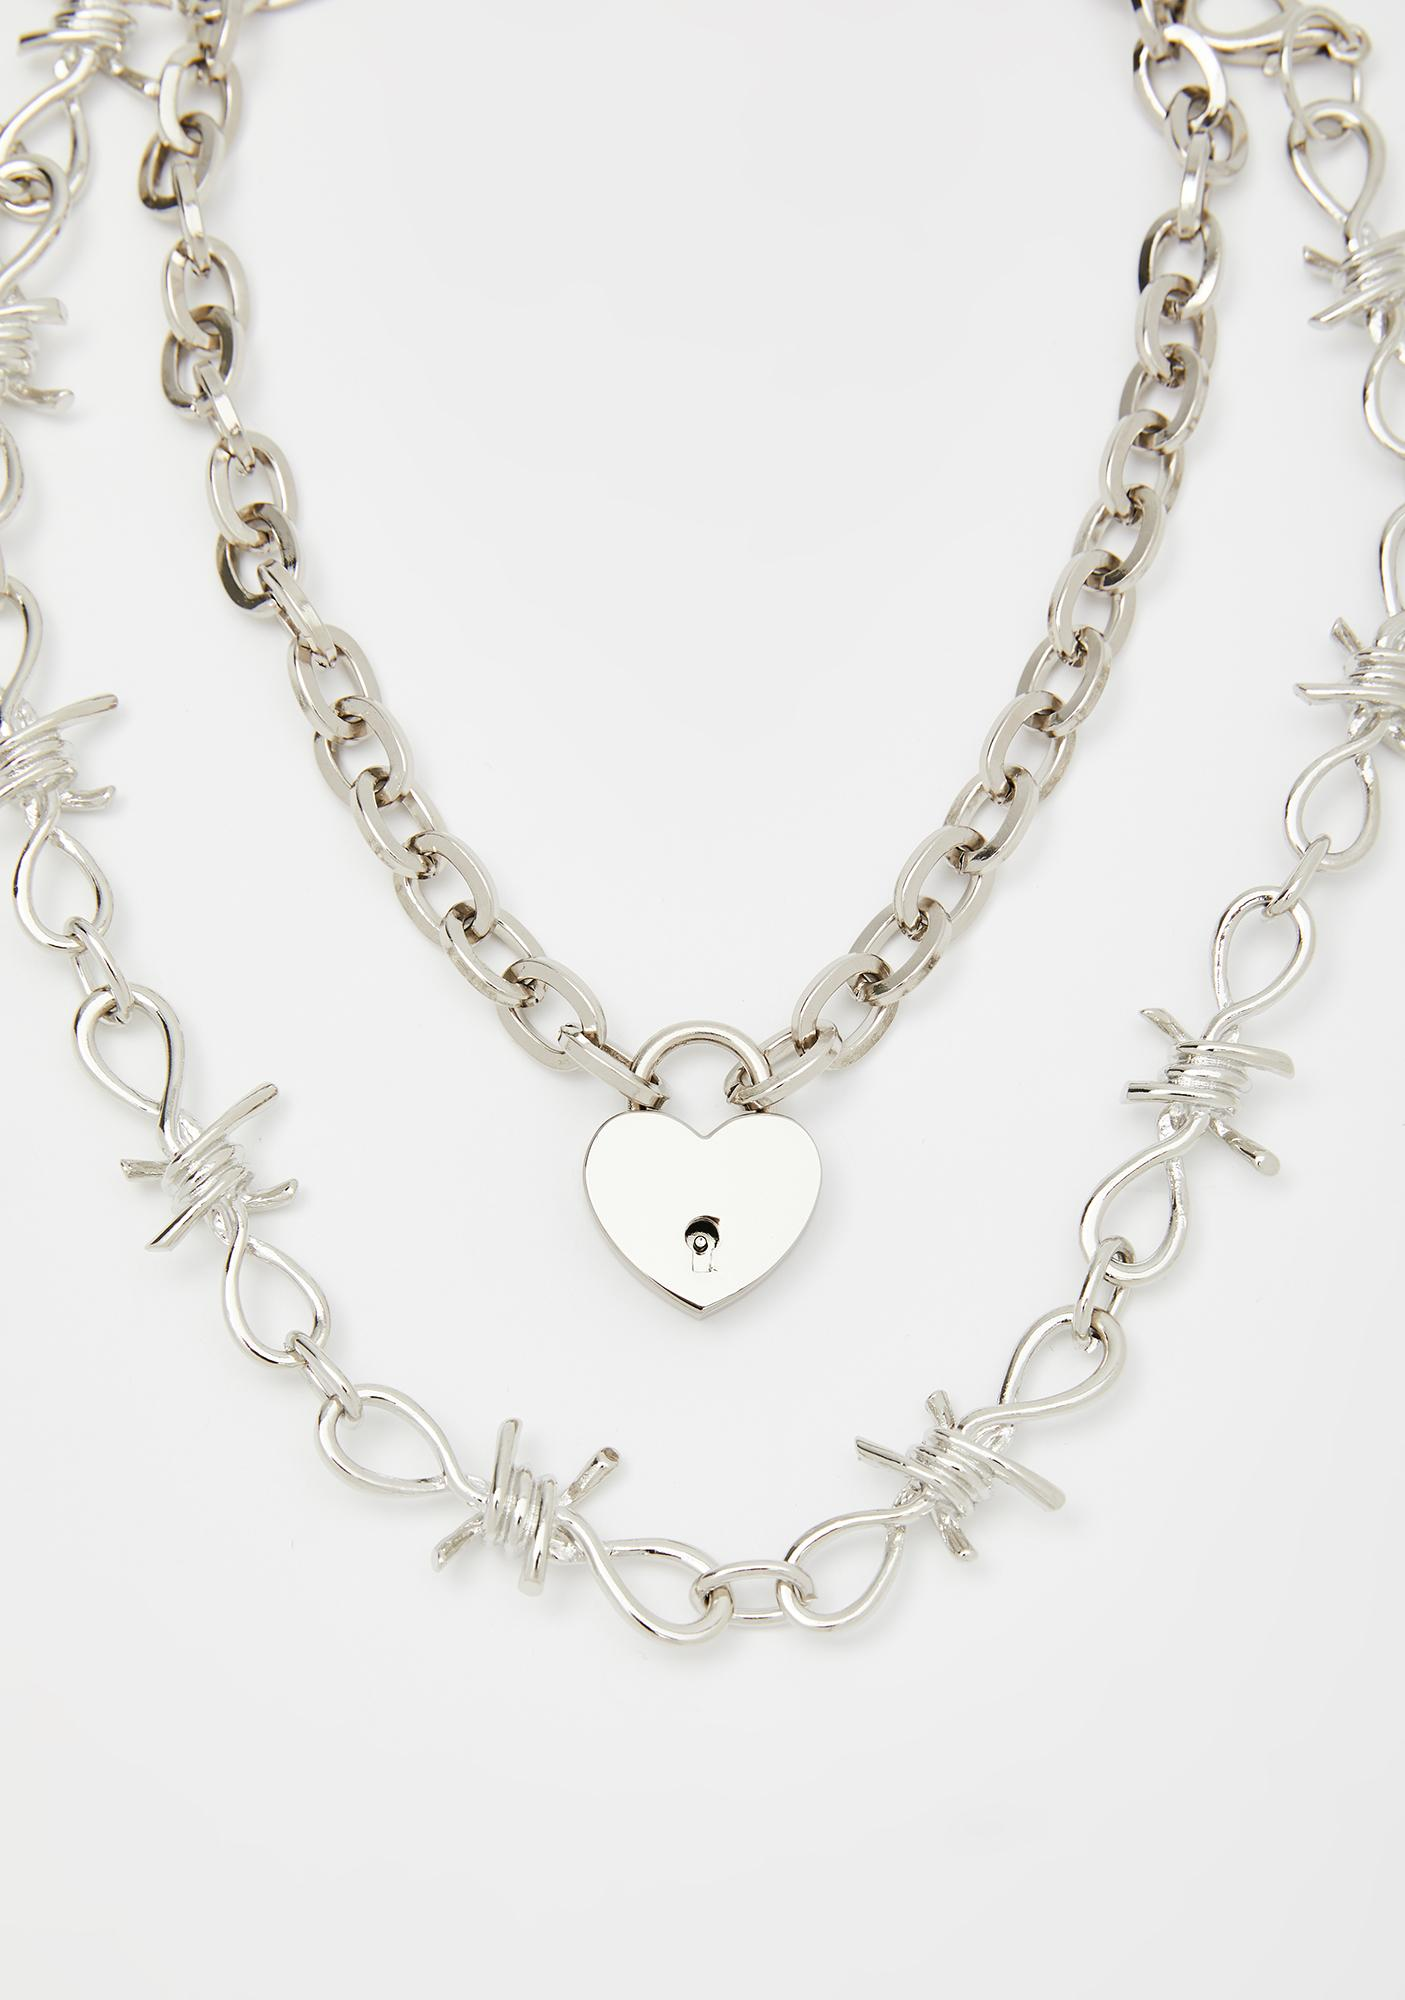 Lethal Lova Chain Necklace